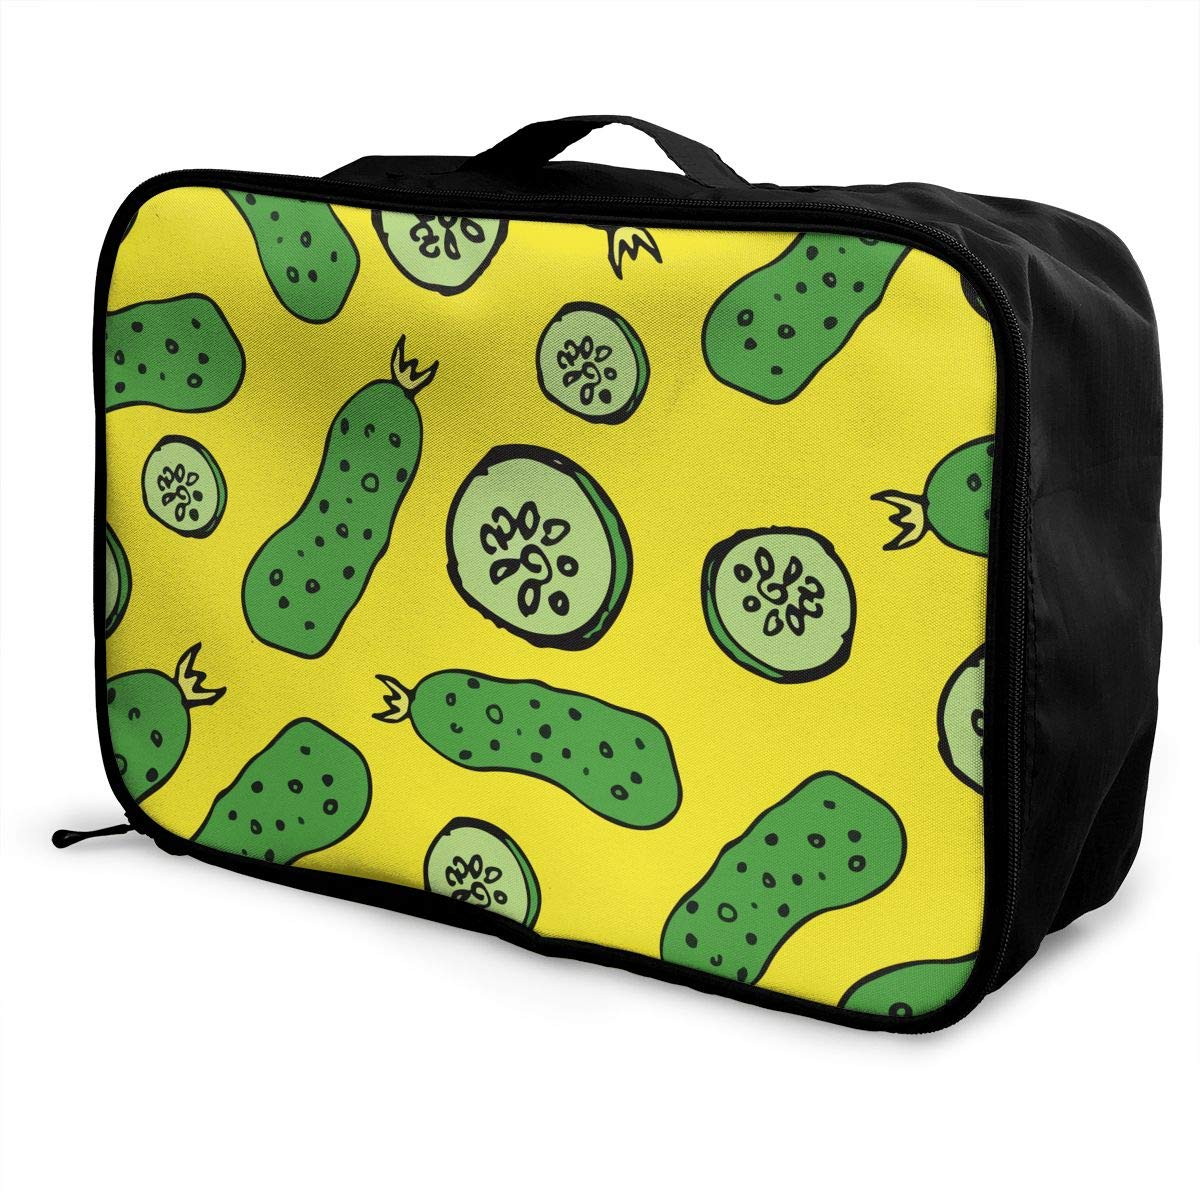 YueLJB Green Cucumber Lightweight Large Capacity Portable Luggage Bag Travel Duffel Bag Storage Carry Luggage Duffle Tote Bag